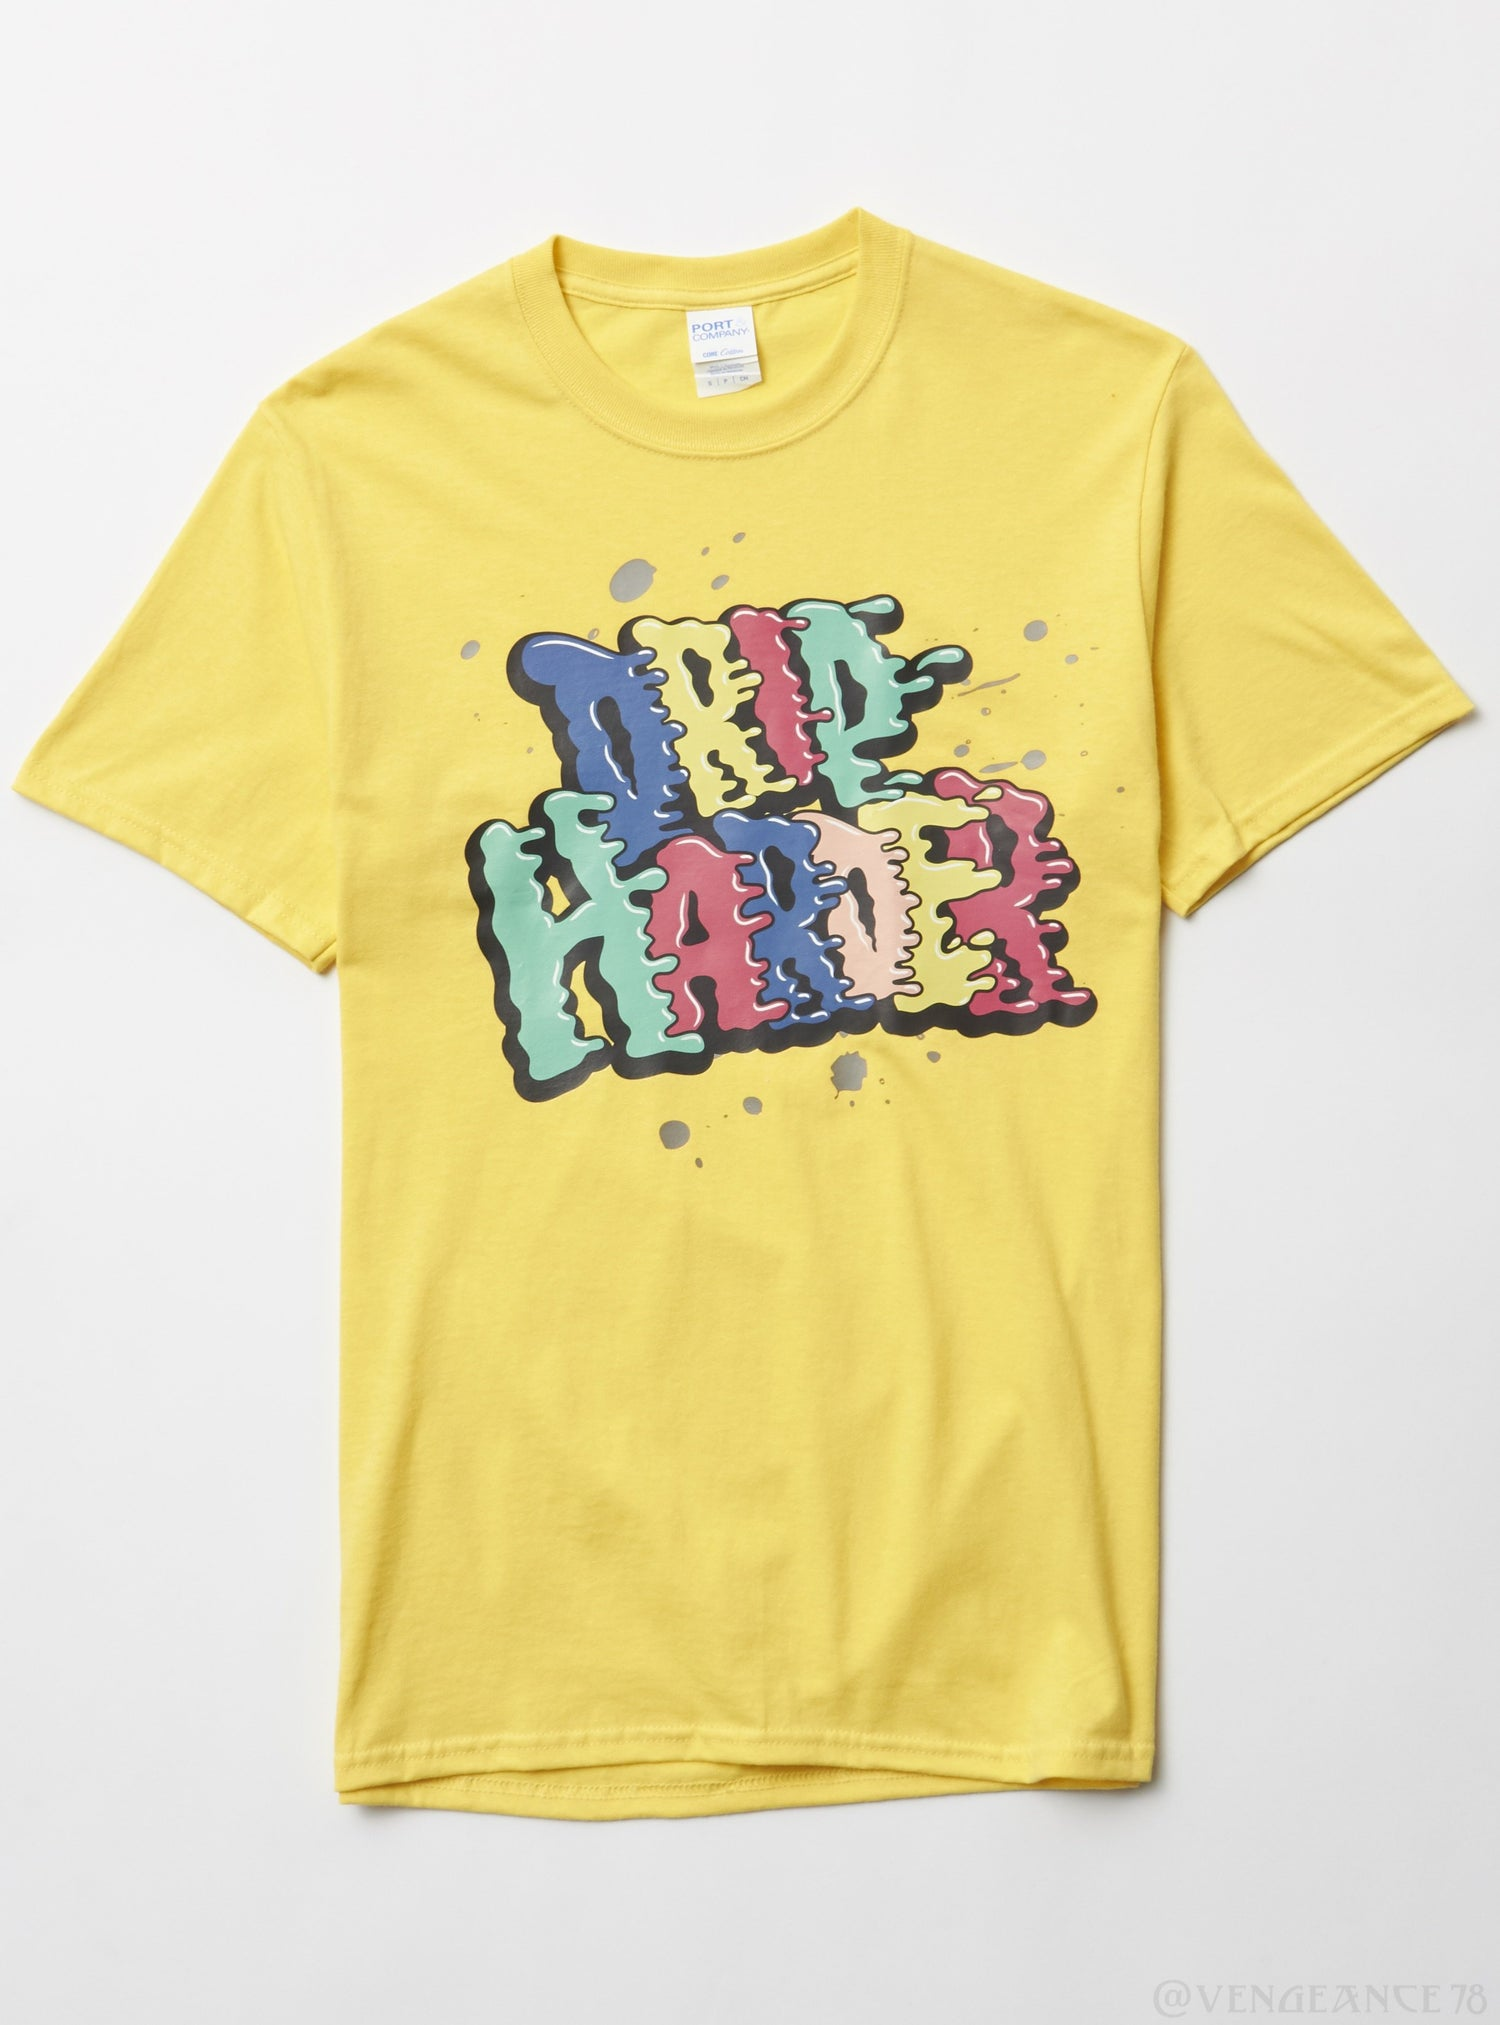 Port & Company T-Shirt - Drip Harder - Yellow